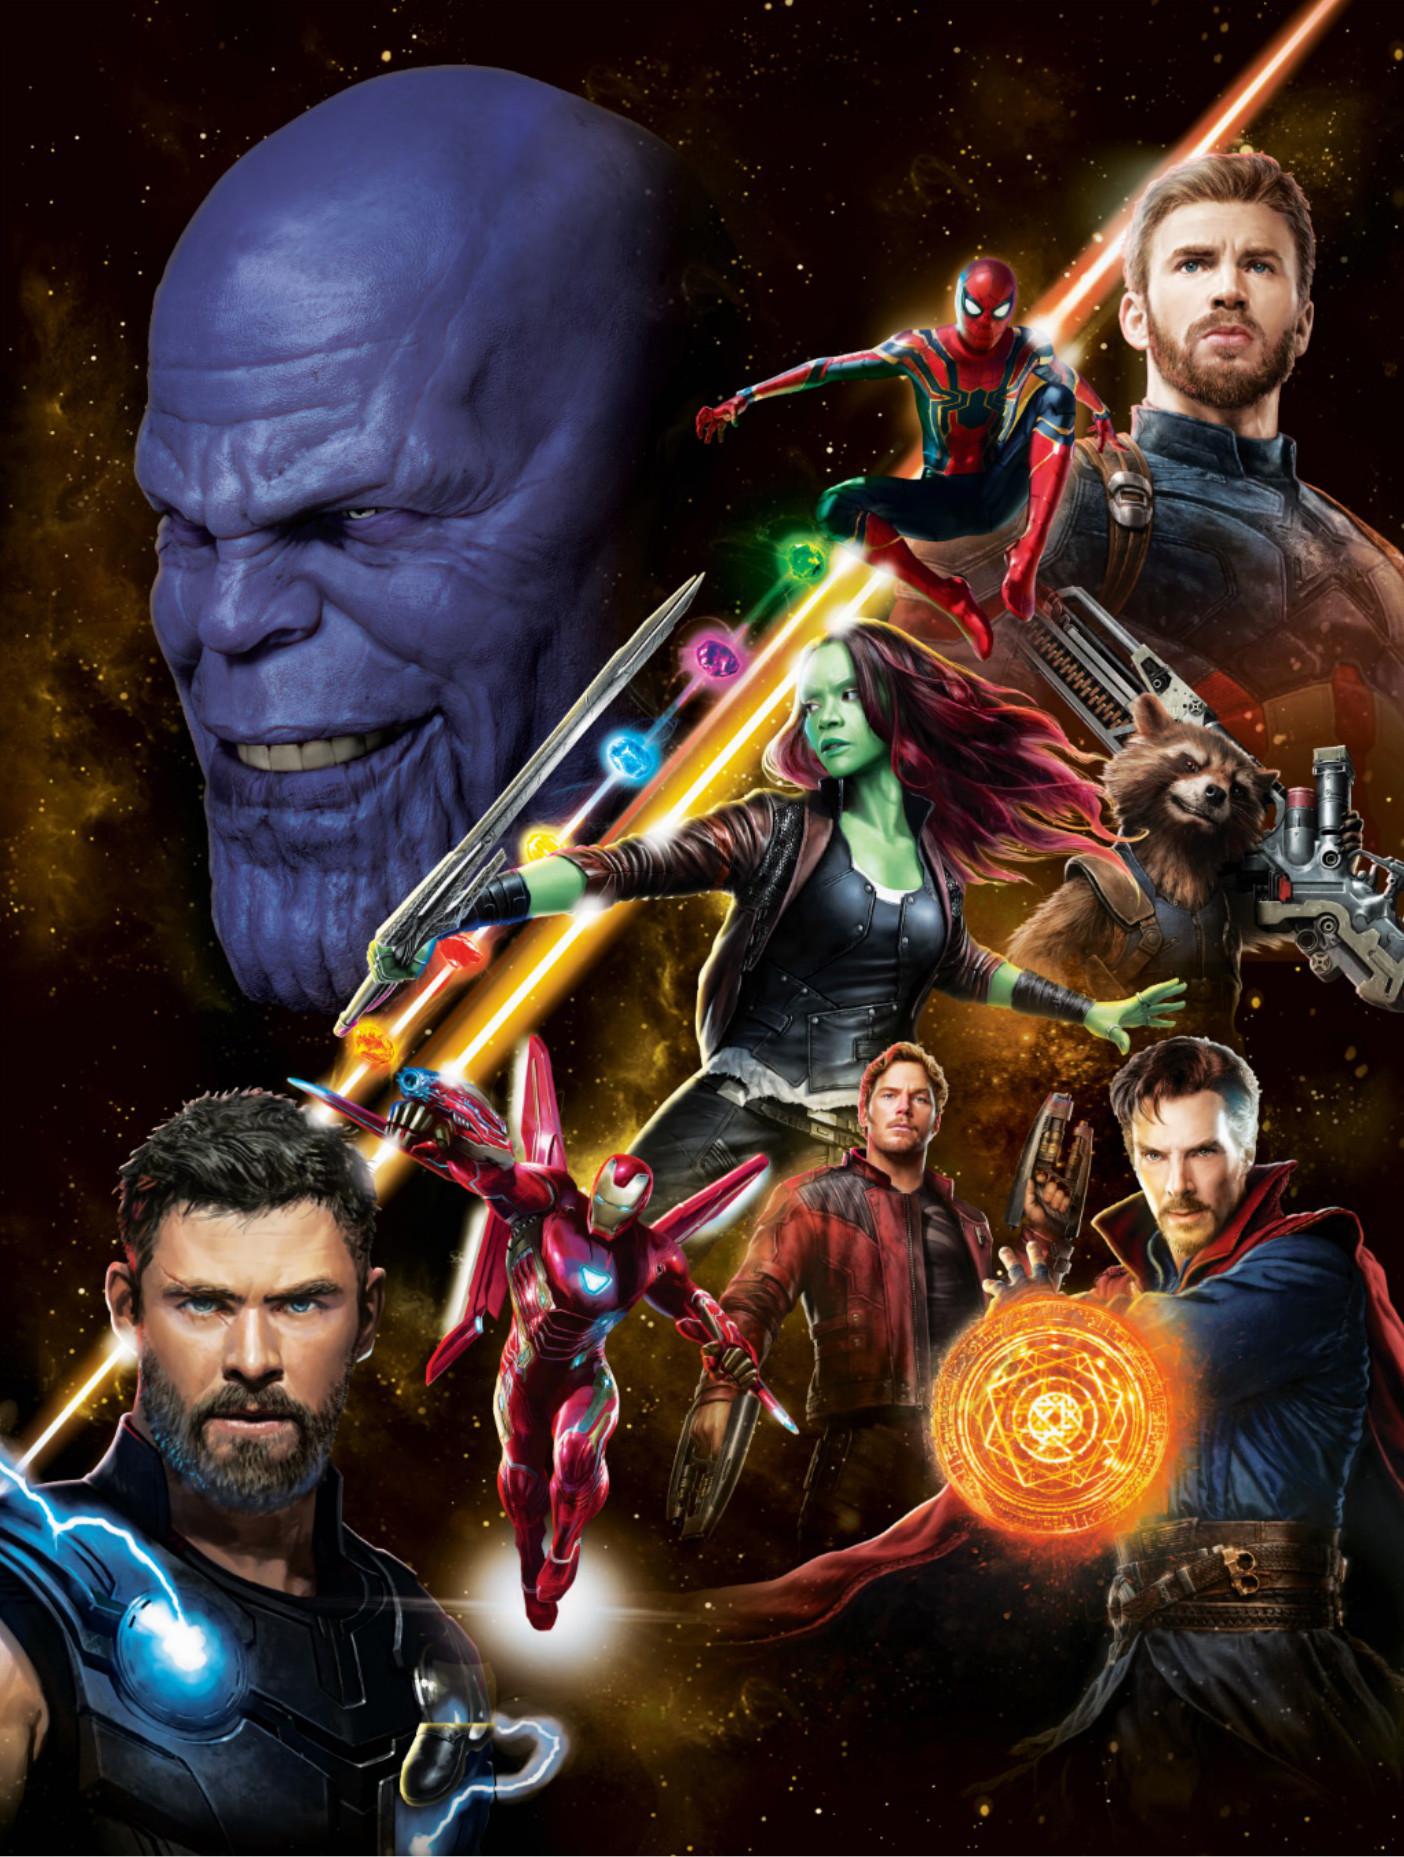 avengers: infinity war assembles in new poster art | cosmic book news